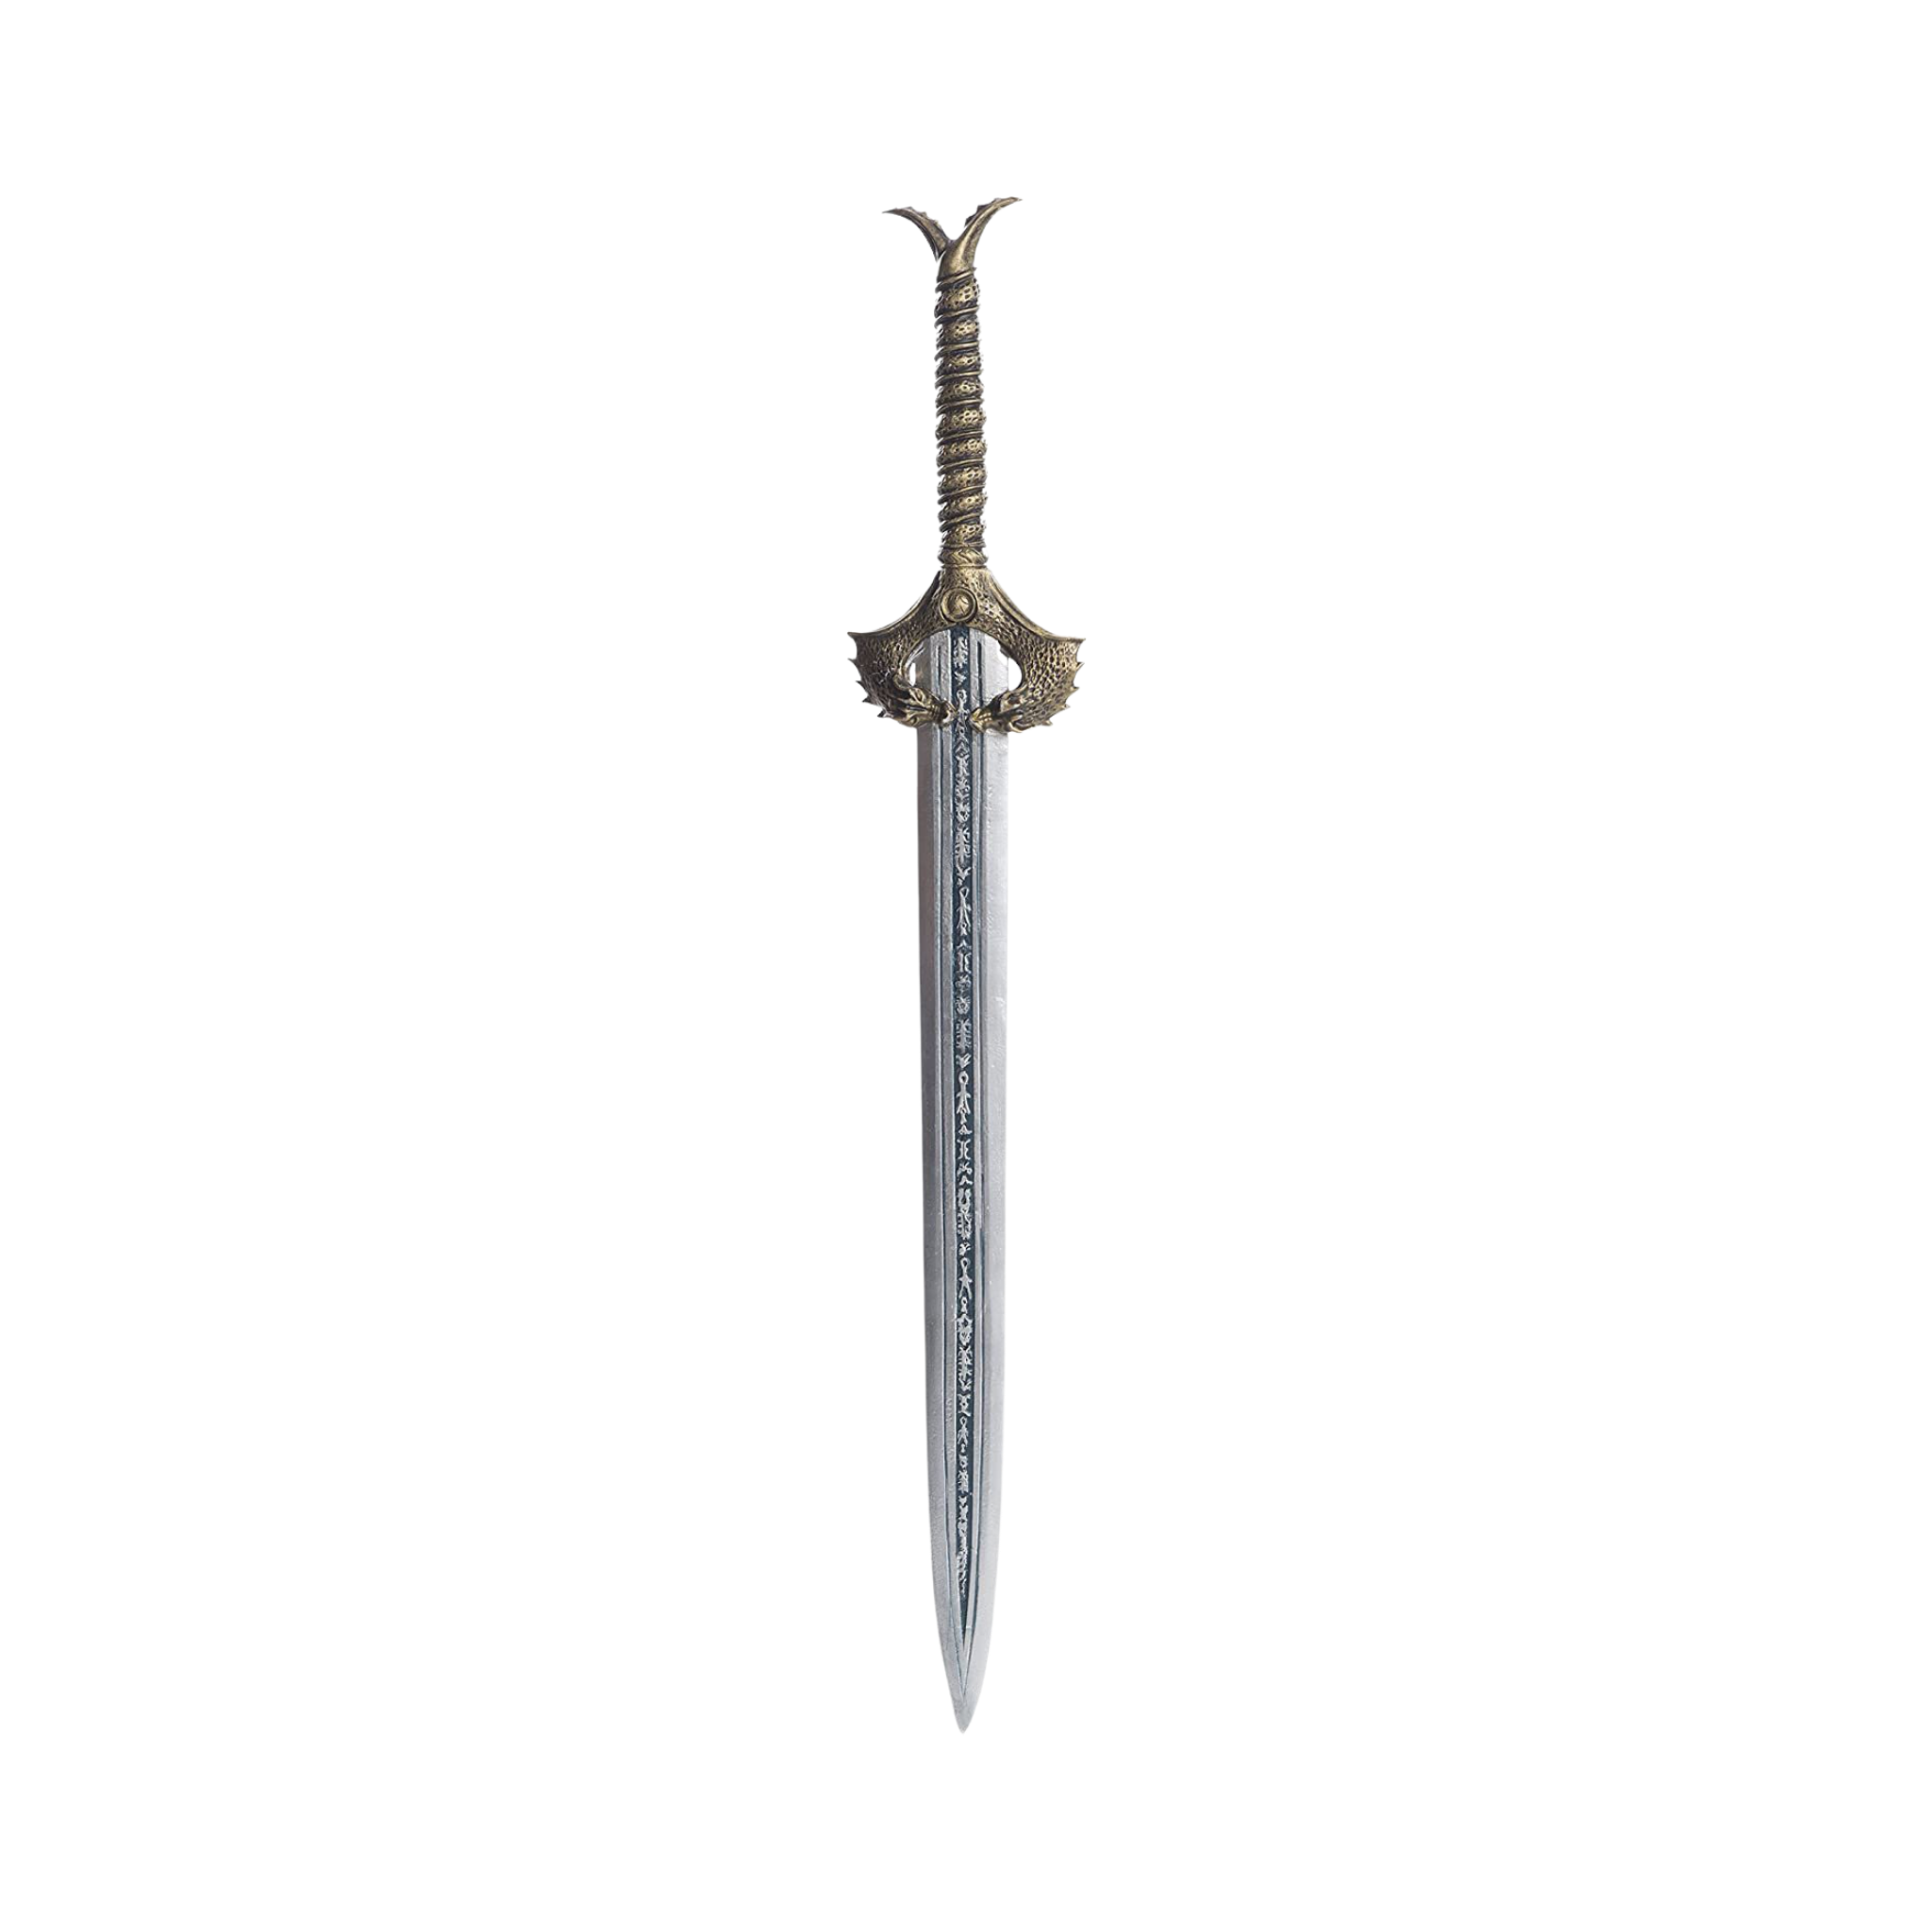 Wonder Woman Movie Sword Costume Accessory, DC Licensed